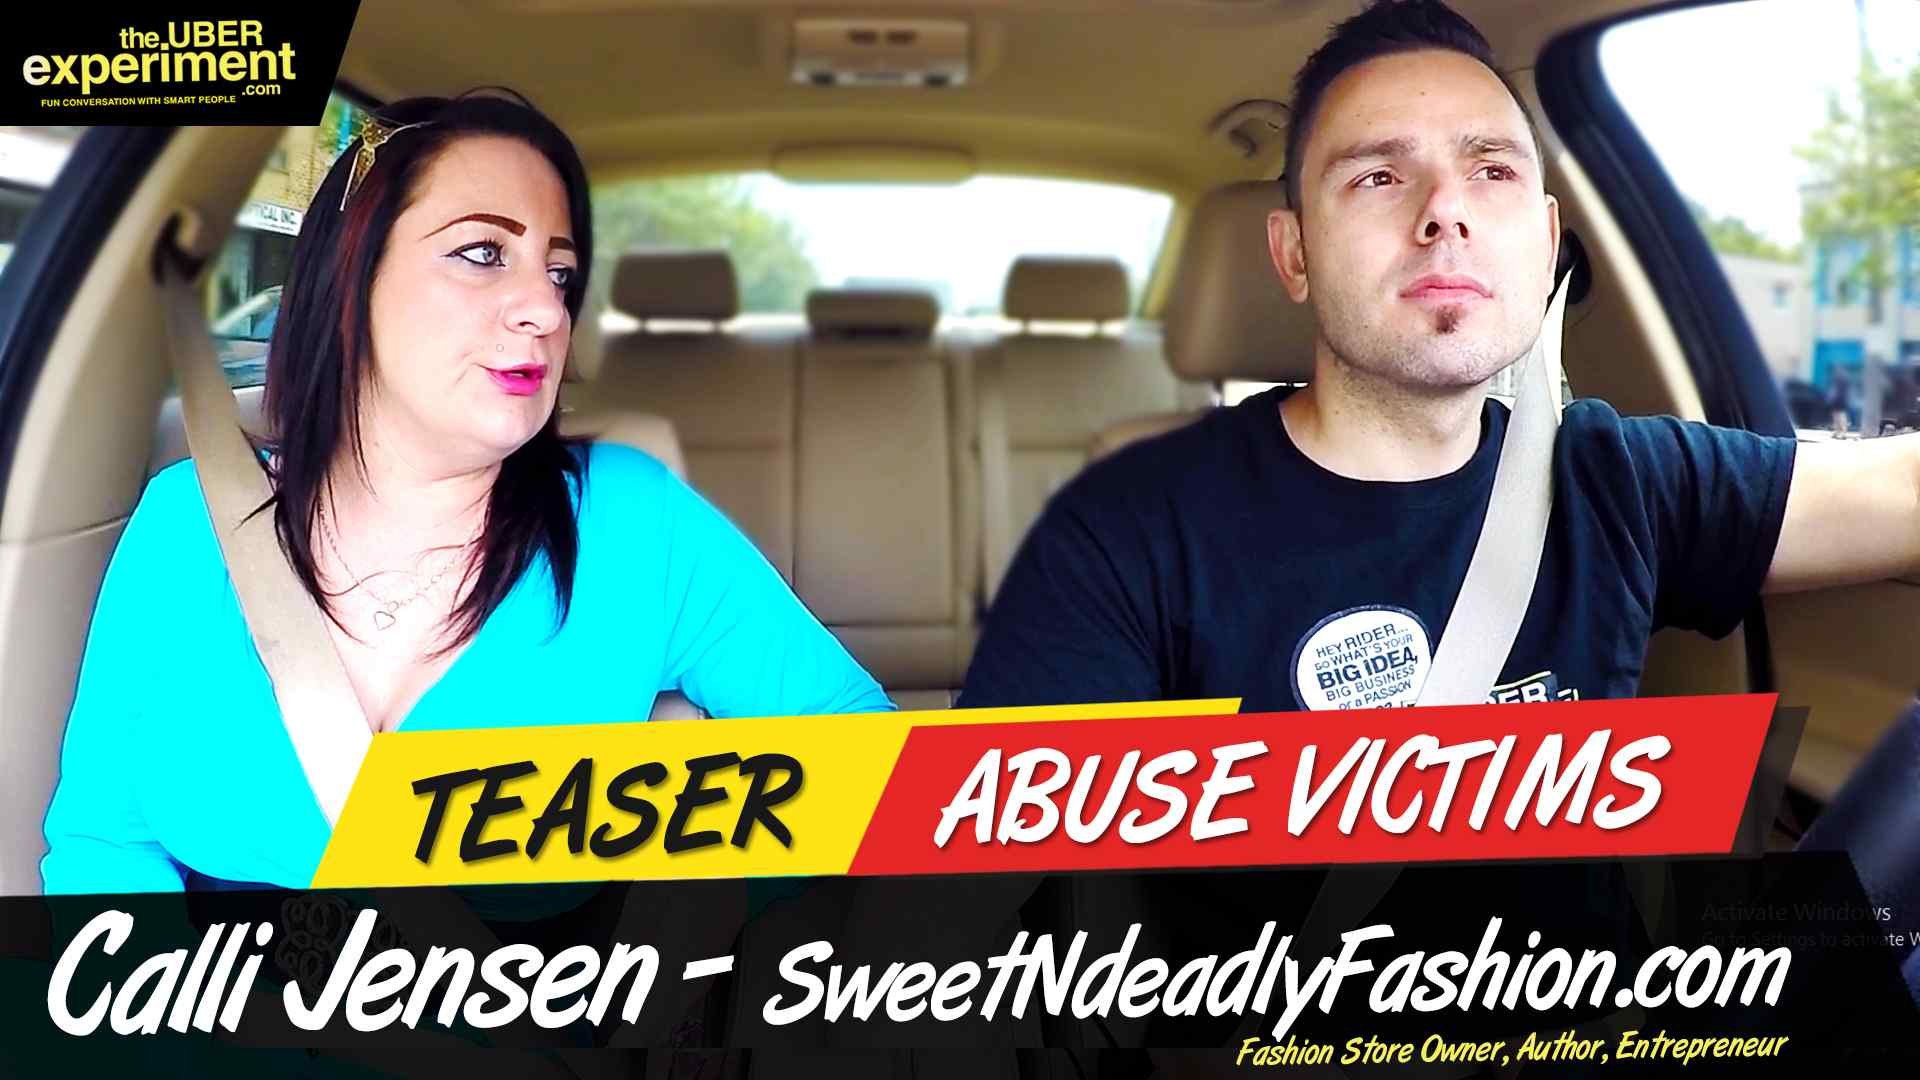 ABUSE VICTIMS - Fashion Store Owner CALLI JENSEN Rides The UBER Experiment Reality Talk Show